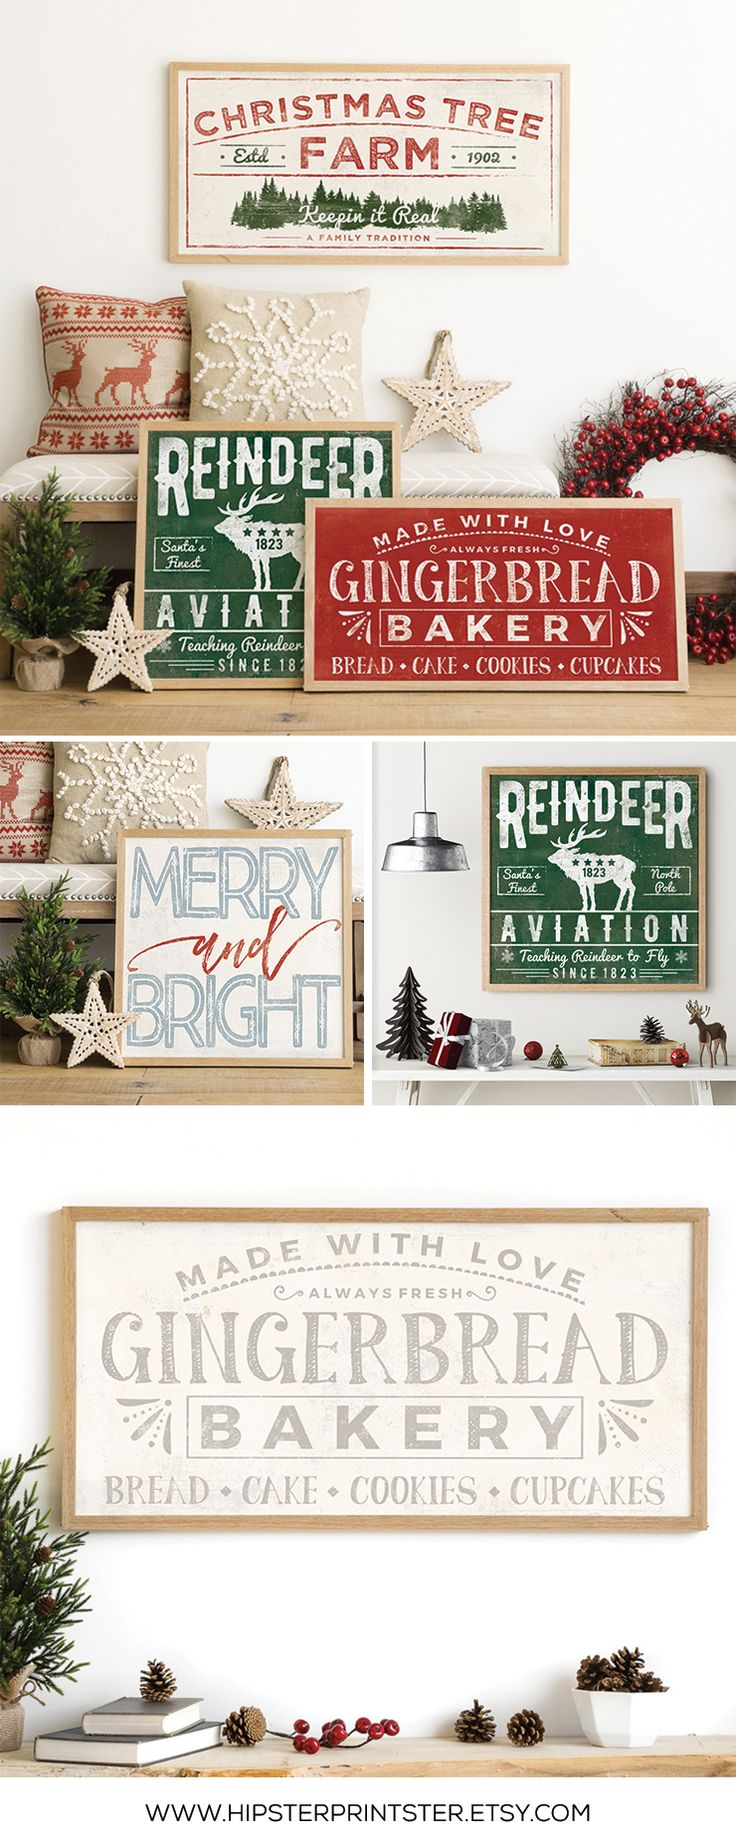 Vintage Christmas Decorations - Affordable Christmas Decor